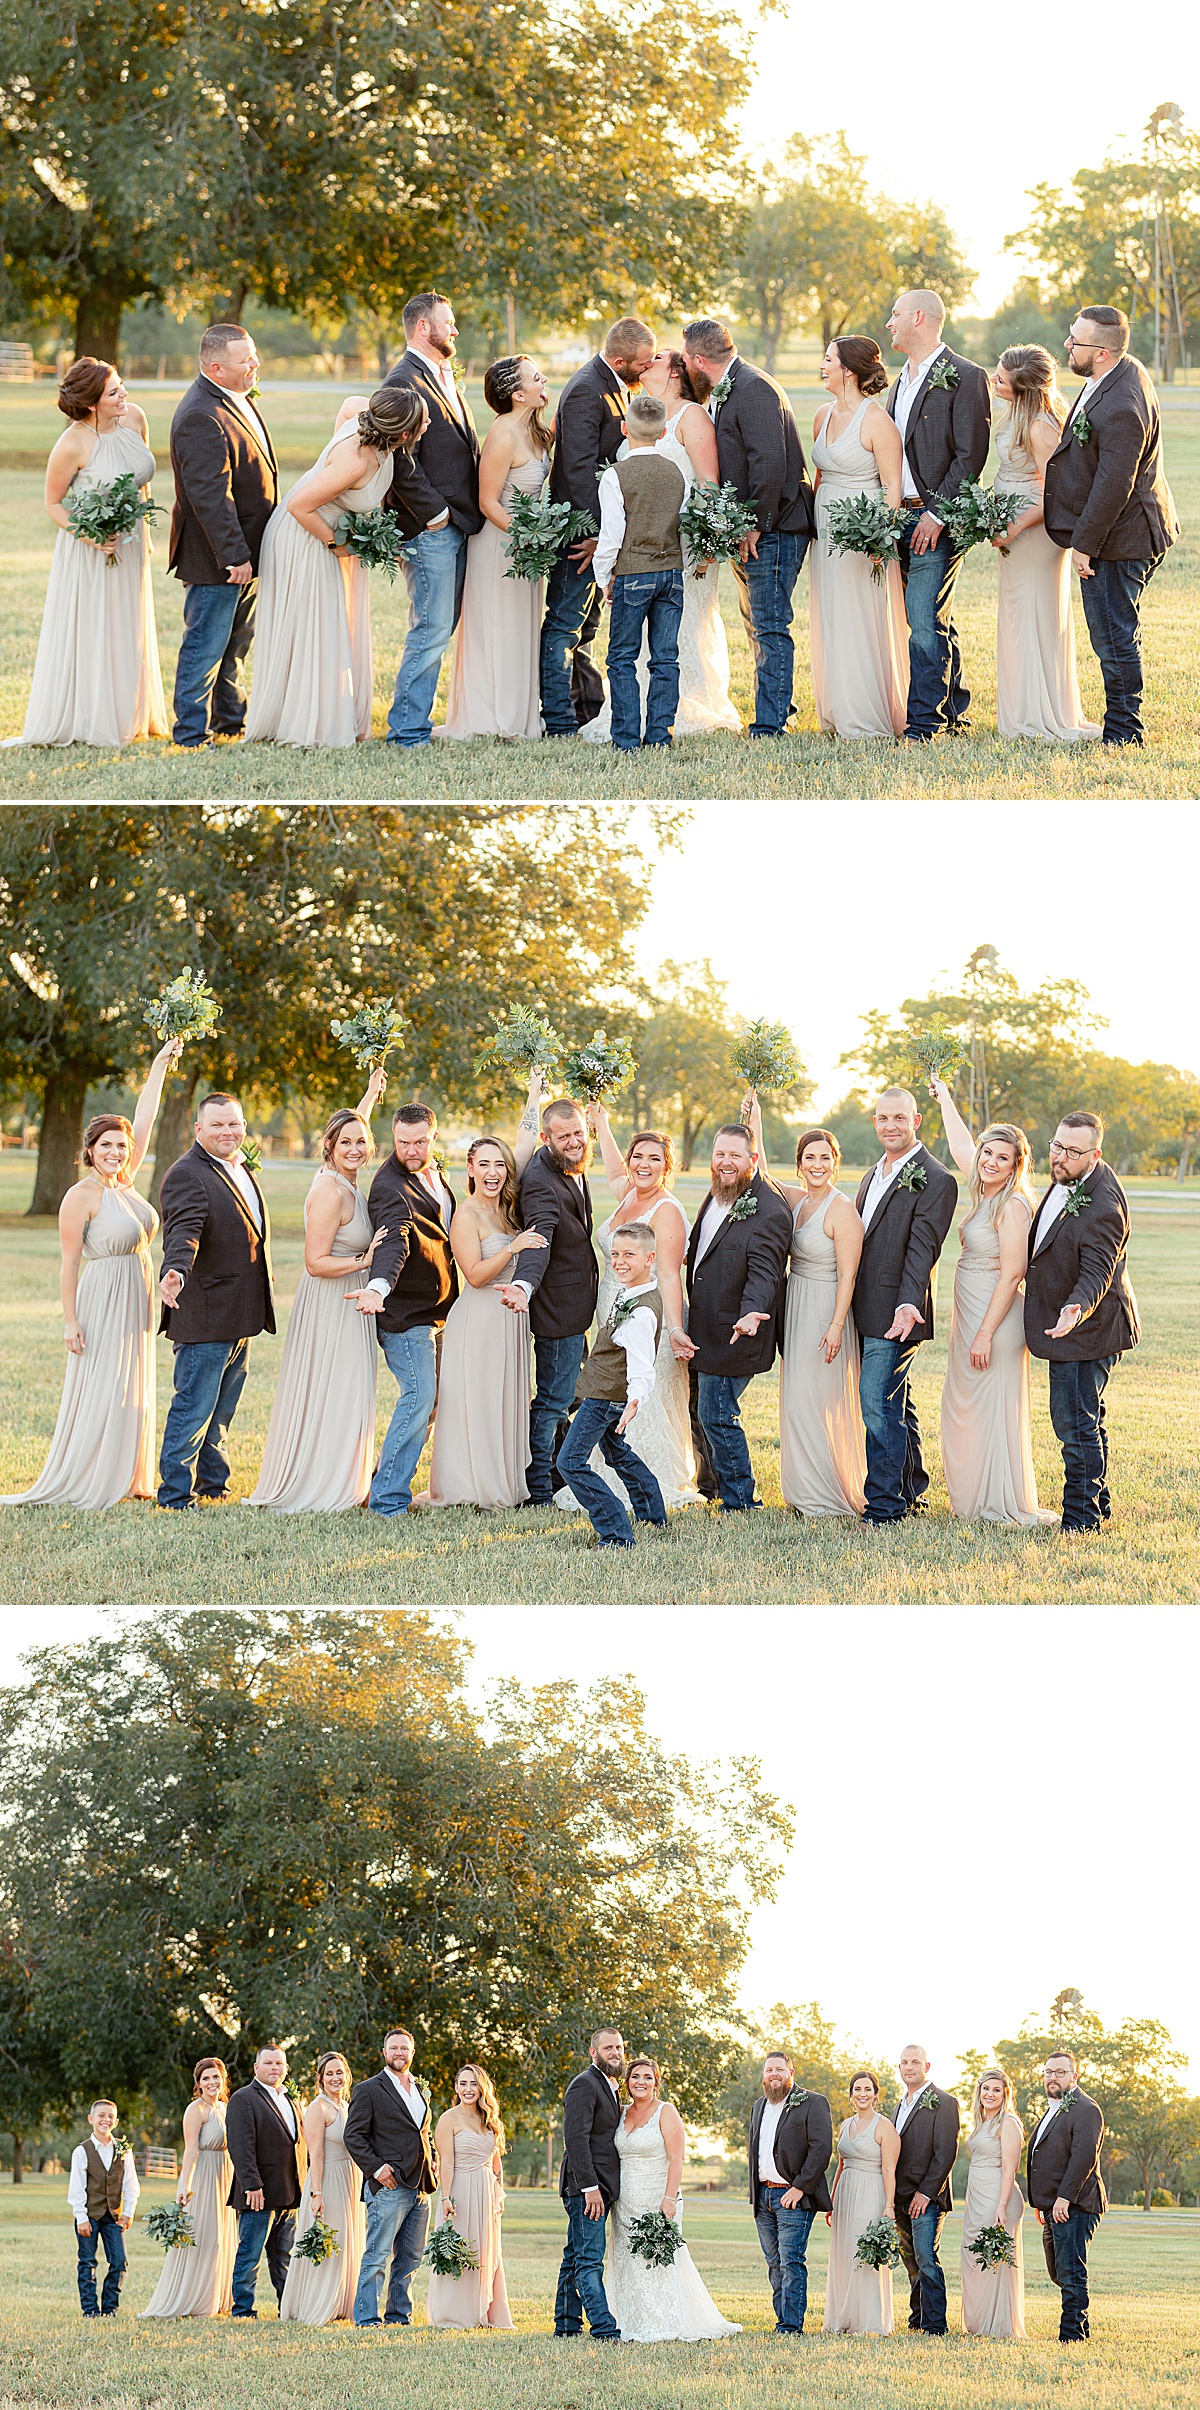 Rustic-Texas-Wedding-Hollow-Creek-Ranch-Carly-Barton-Photography_0077.jpg